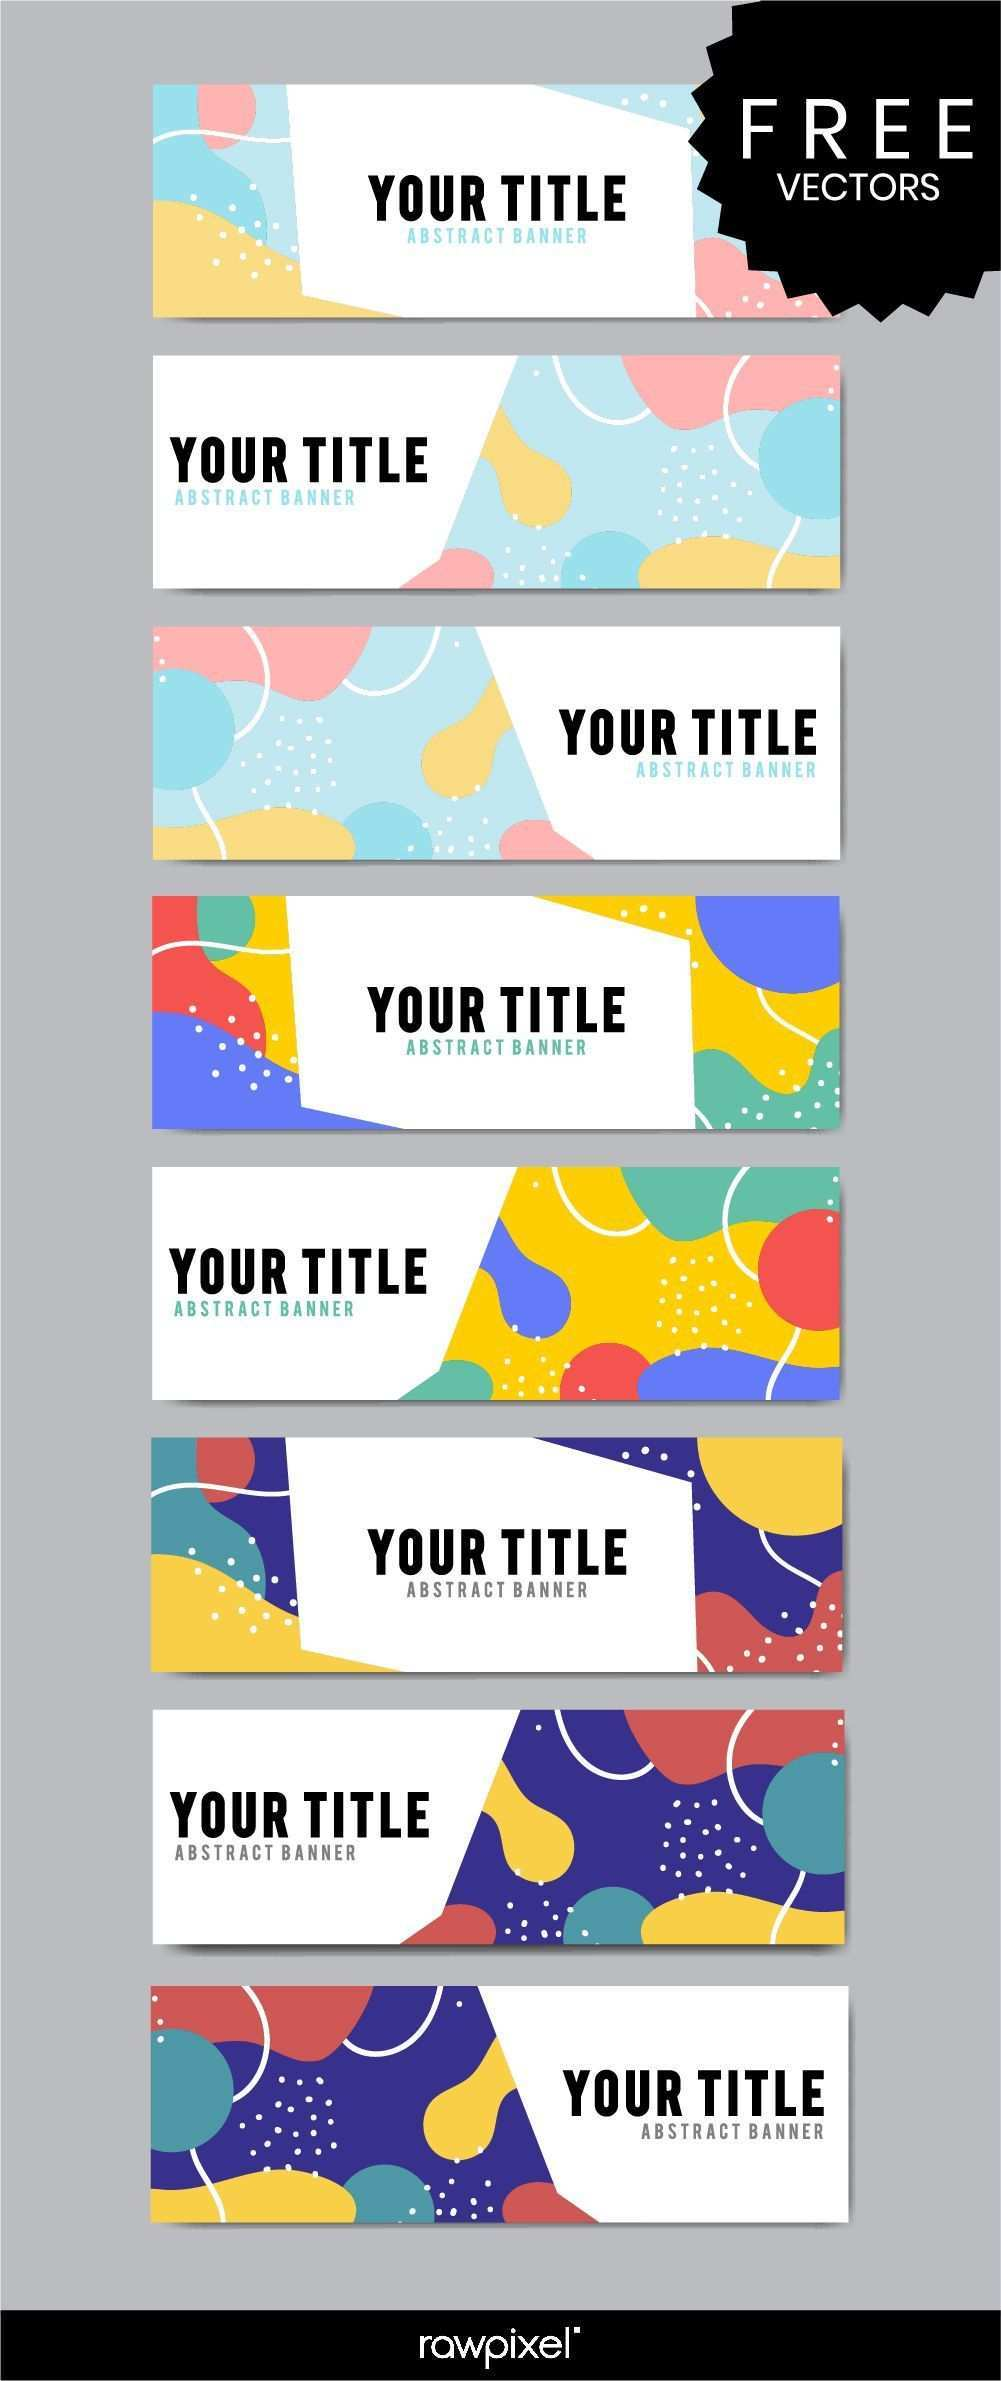 Download Free Modern Business Banner Templates In Memphis Style At Rawpixel Com Webdesignba Banner Template Design Web Banner Design Banner Design Inspiration